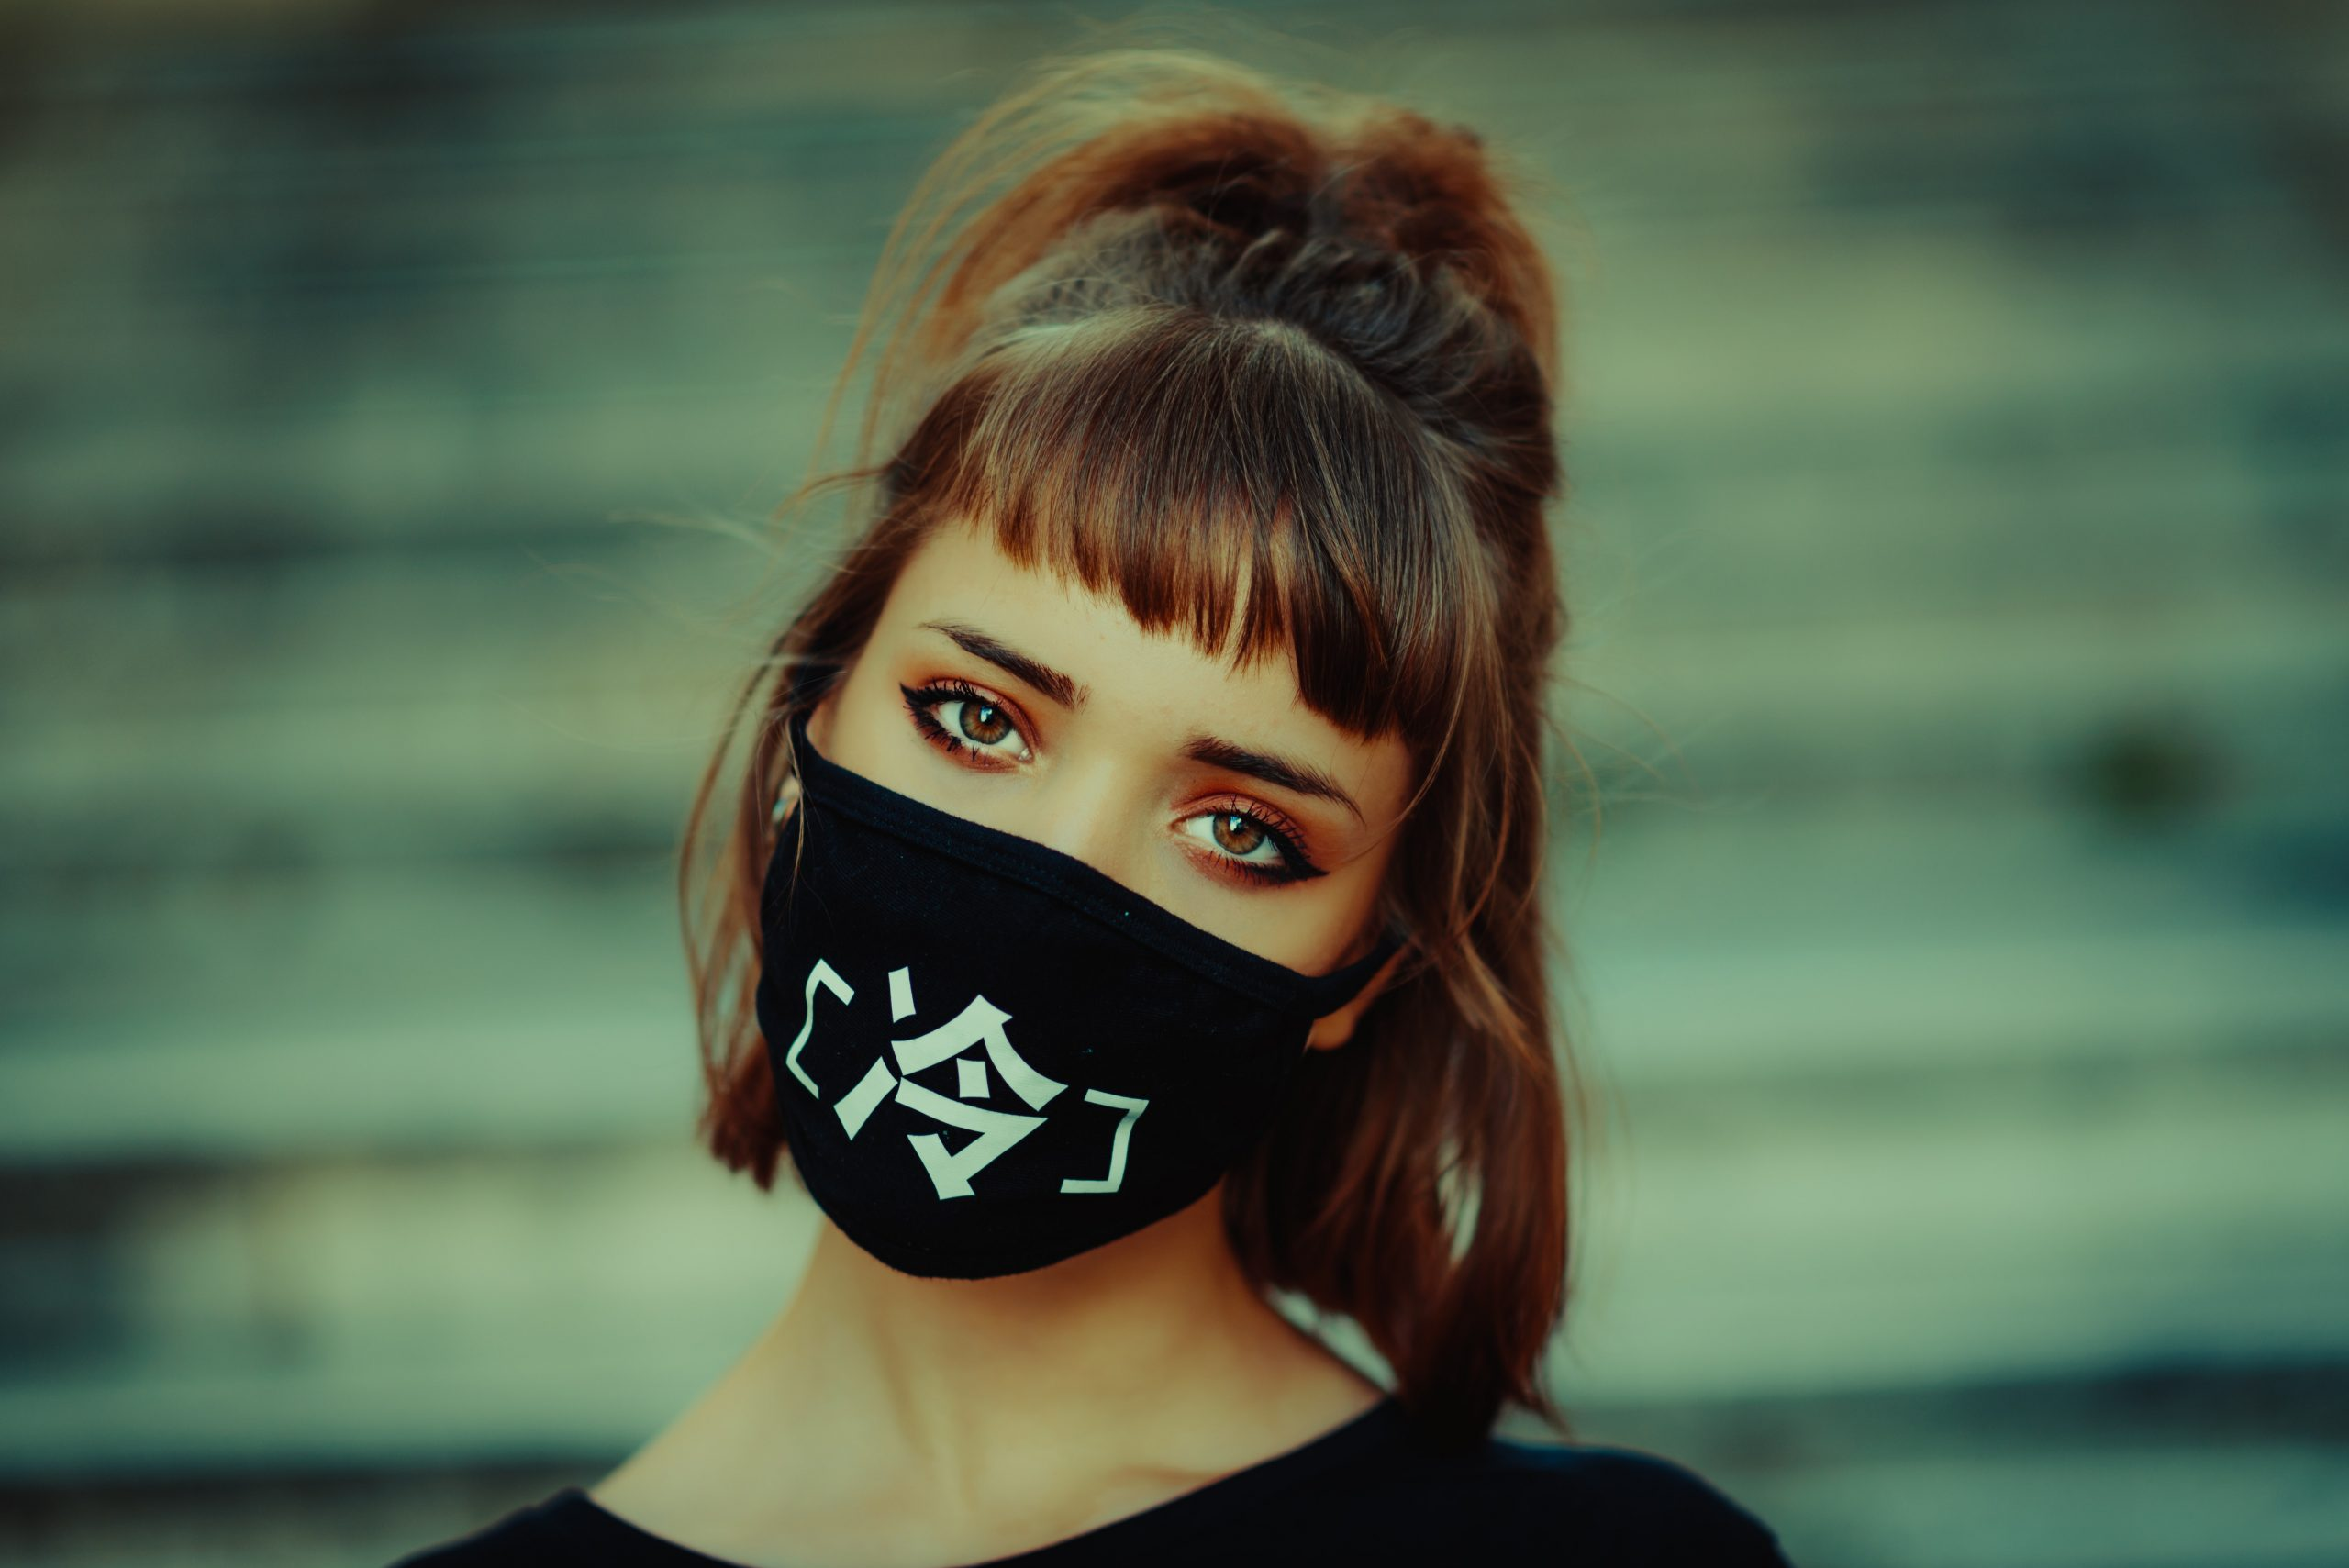 We All Wear Masks